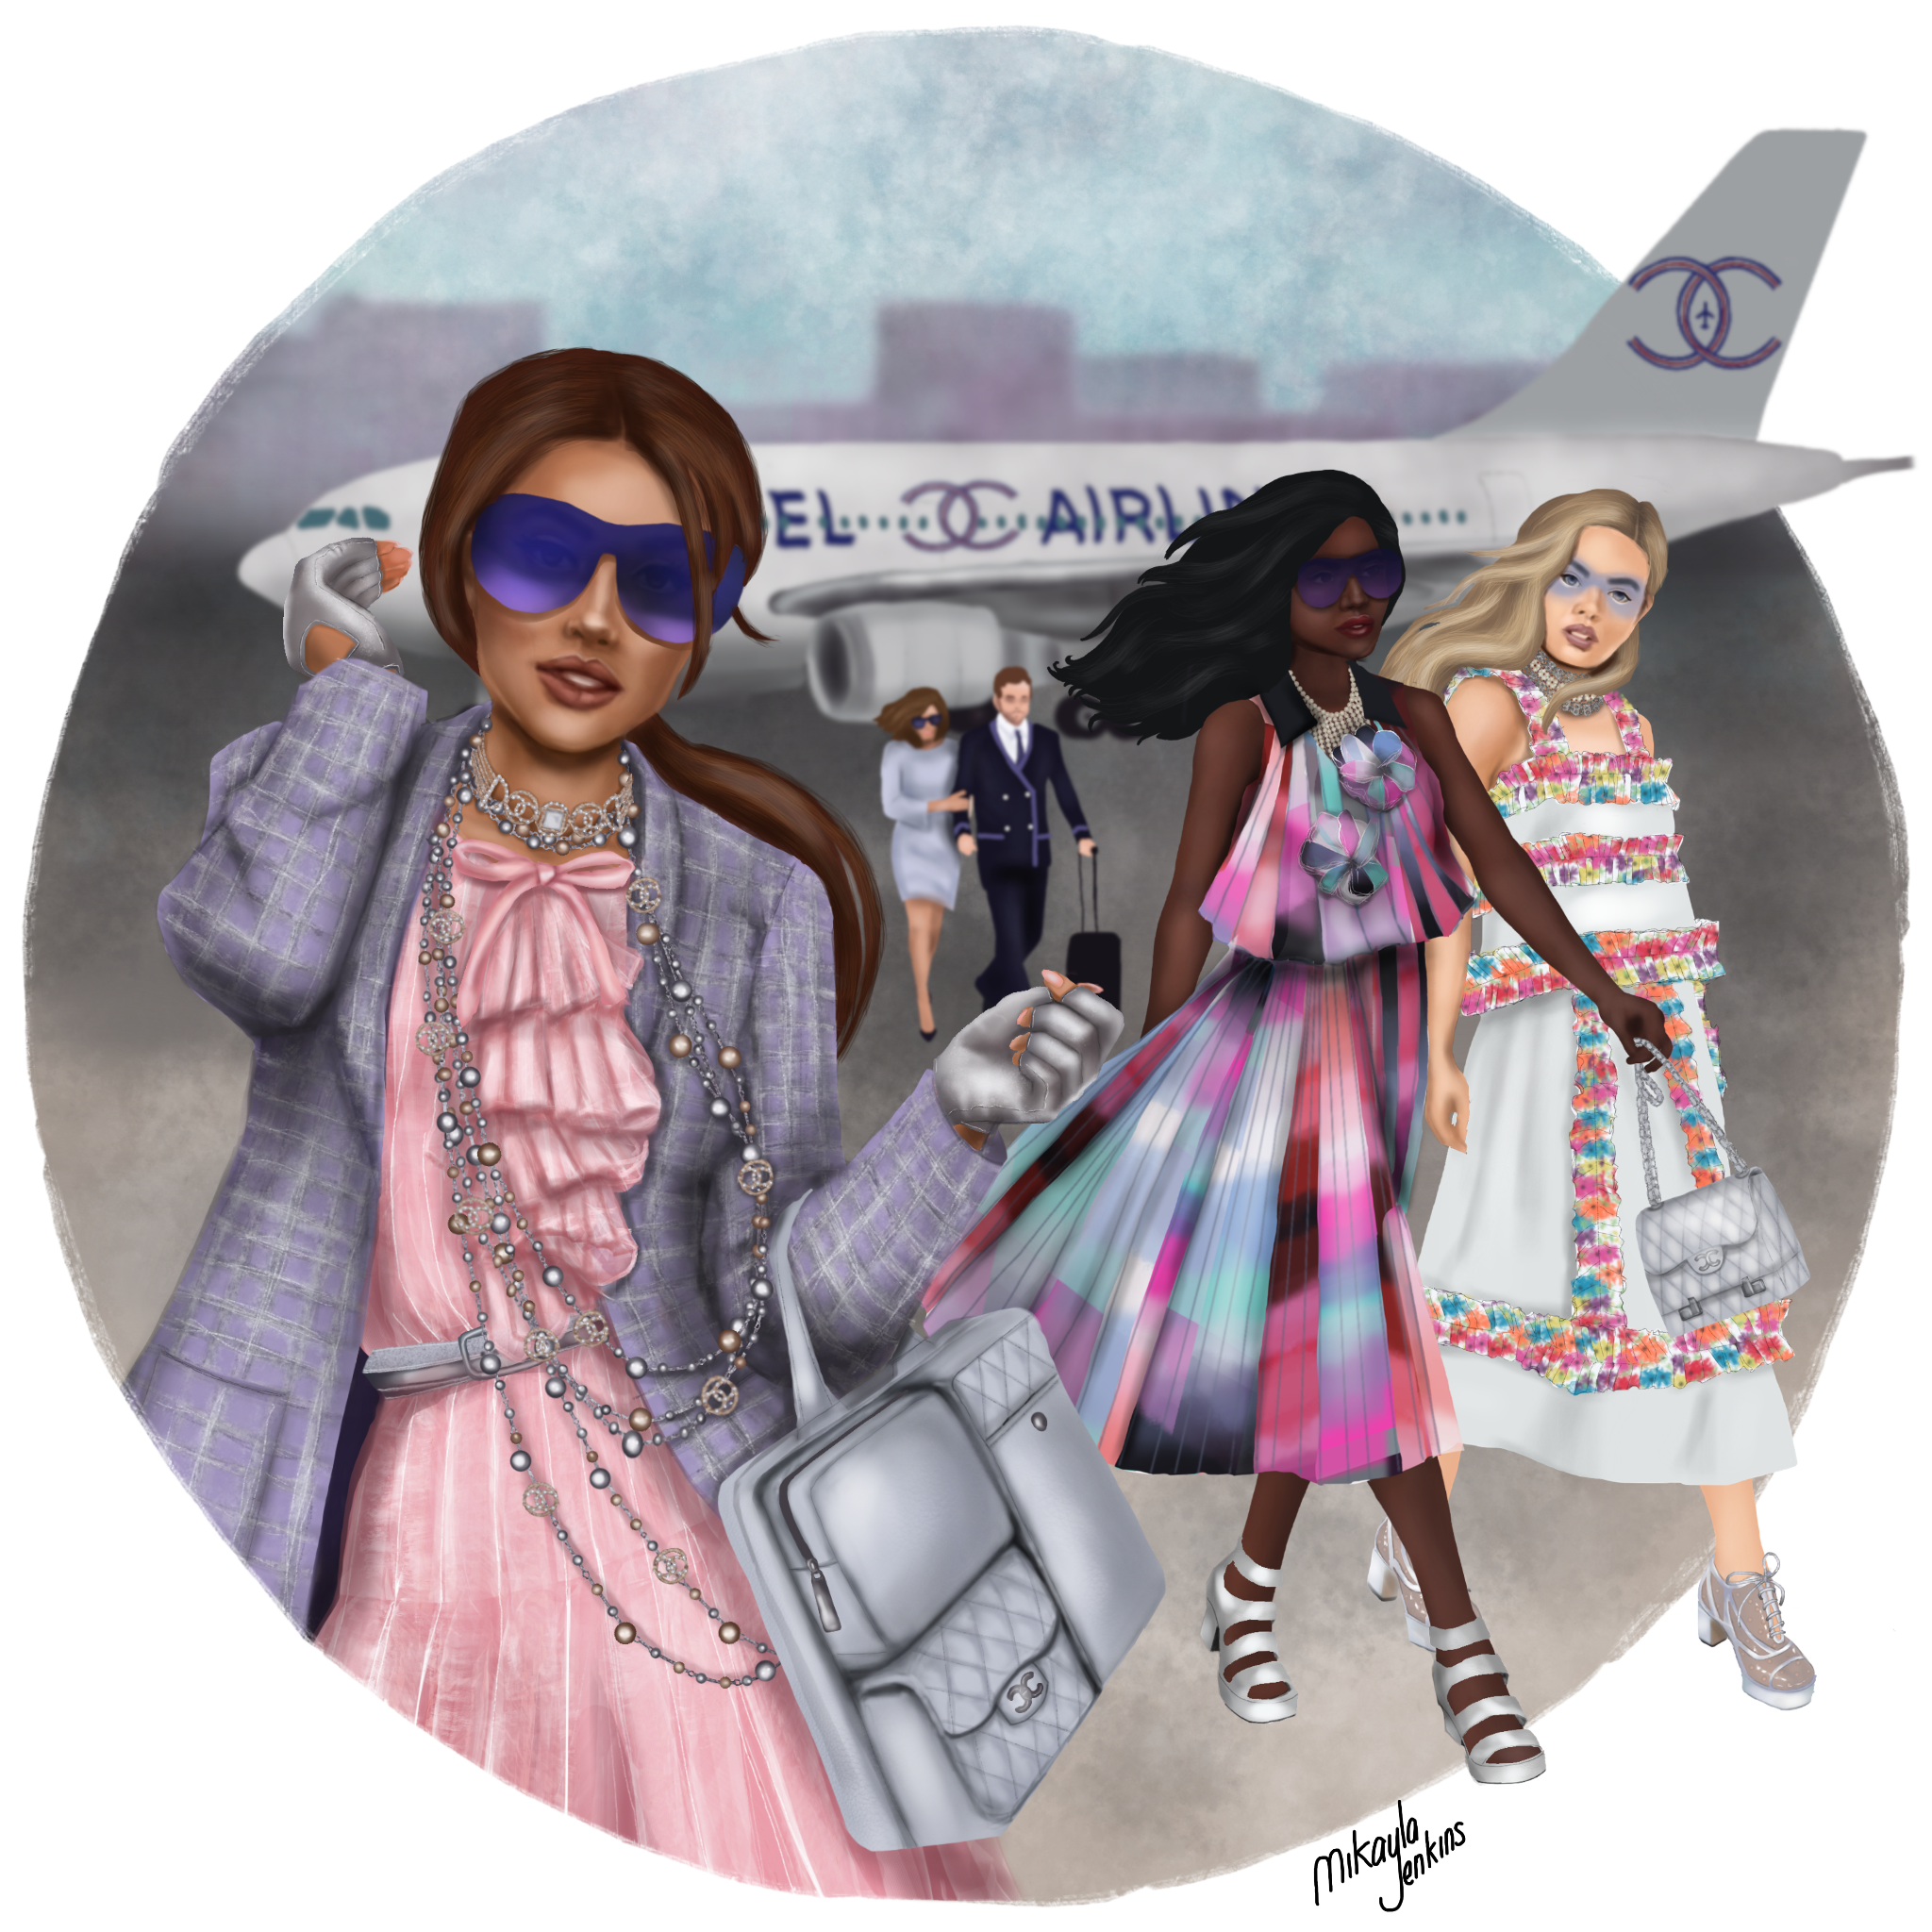 Sublime Cravings Illustration - Chanel Spring 2016 - Tribute to Lagerfeld